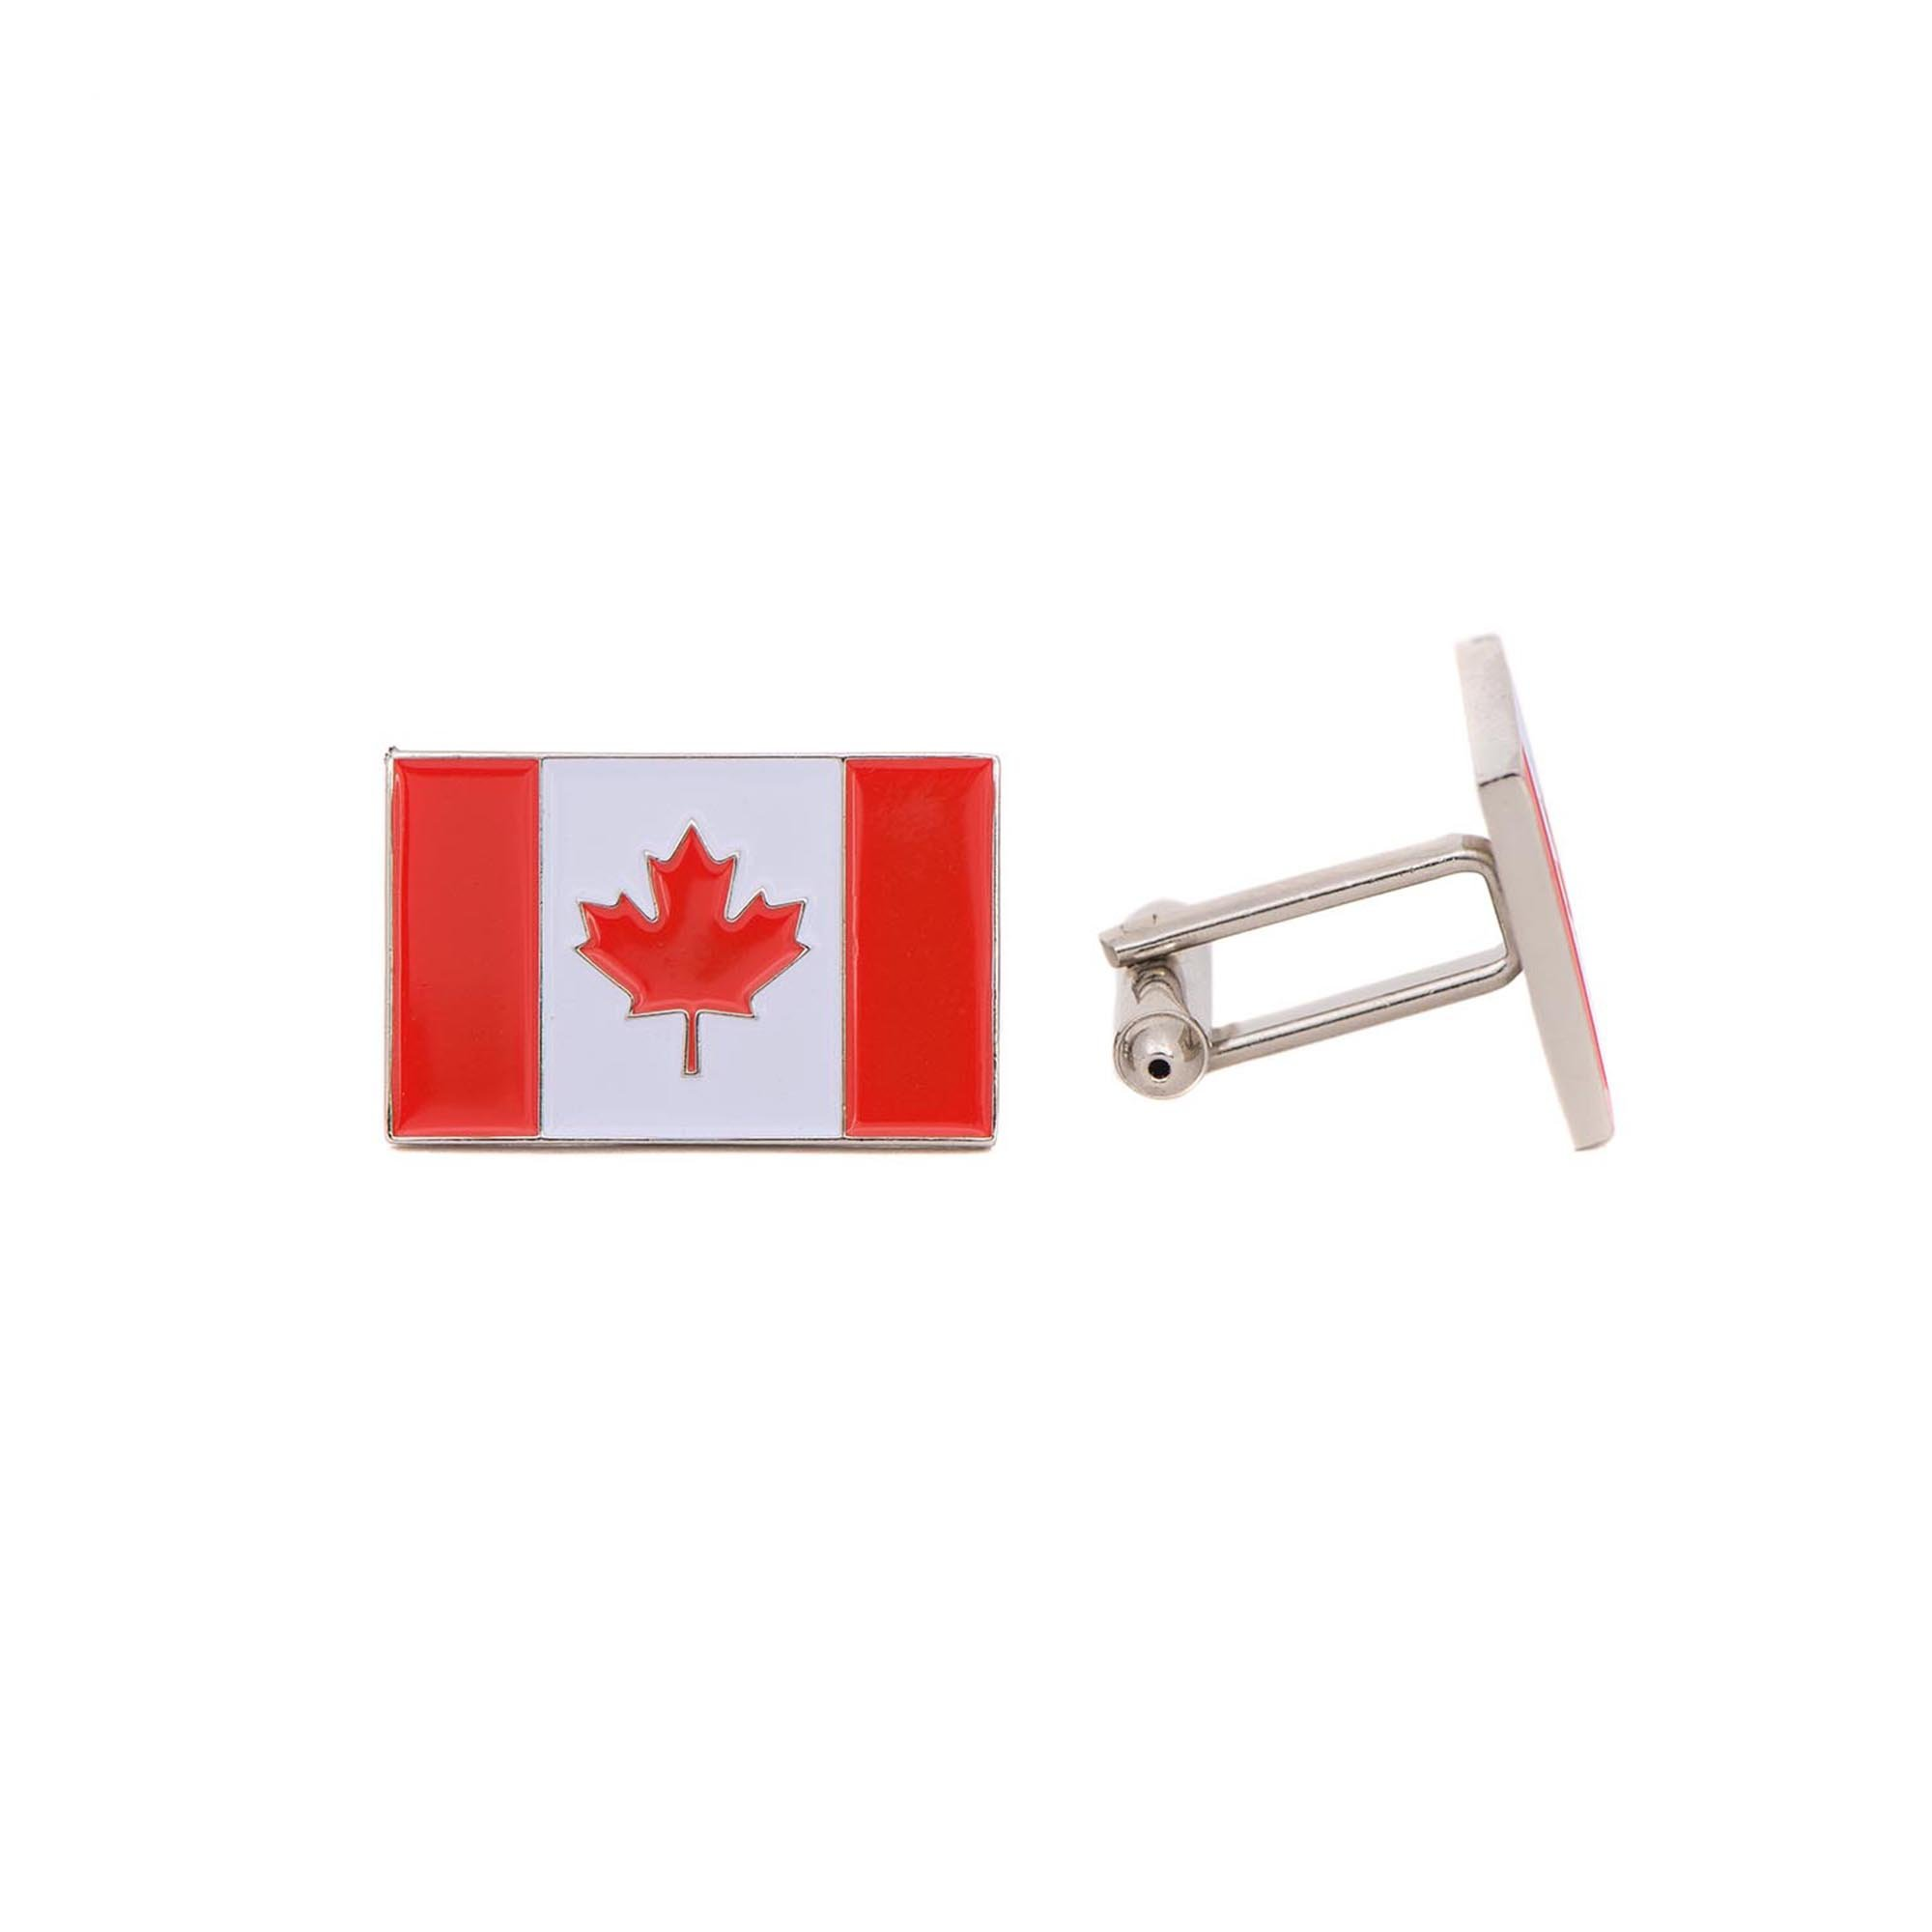 Desert Cactus Canada Rectangle Country Flag Cufflinks Formal Wear Blazer For French Cuff Shirt Canadian